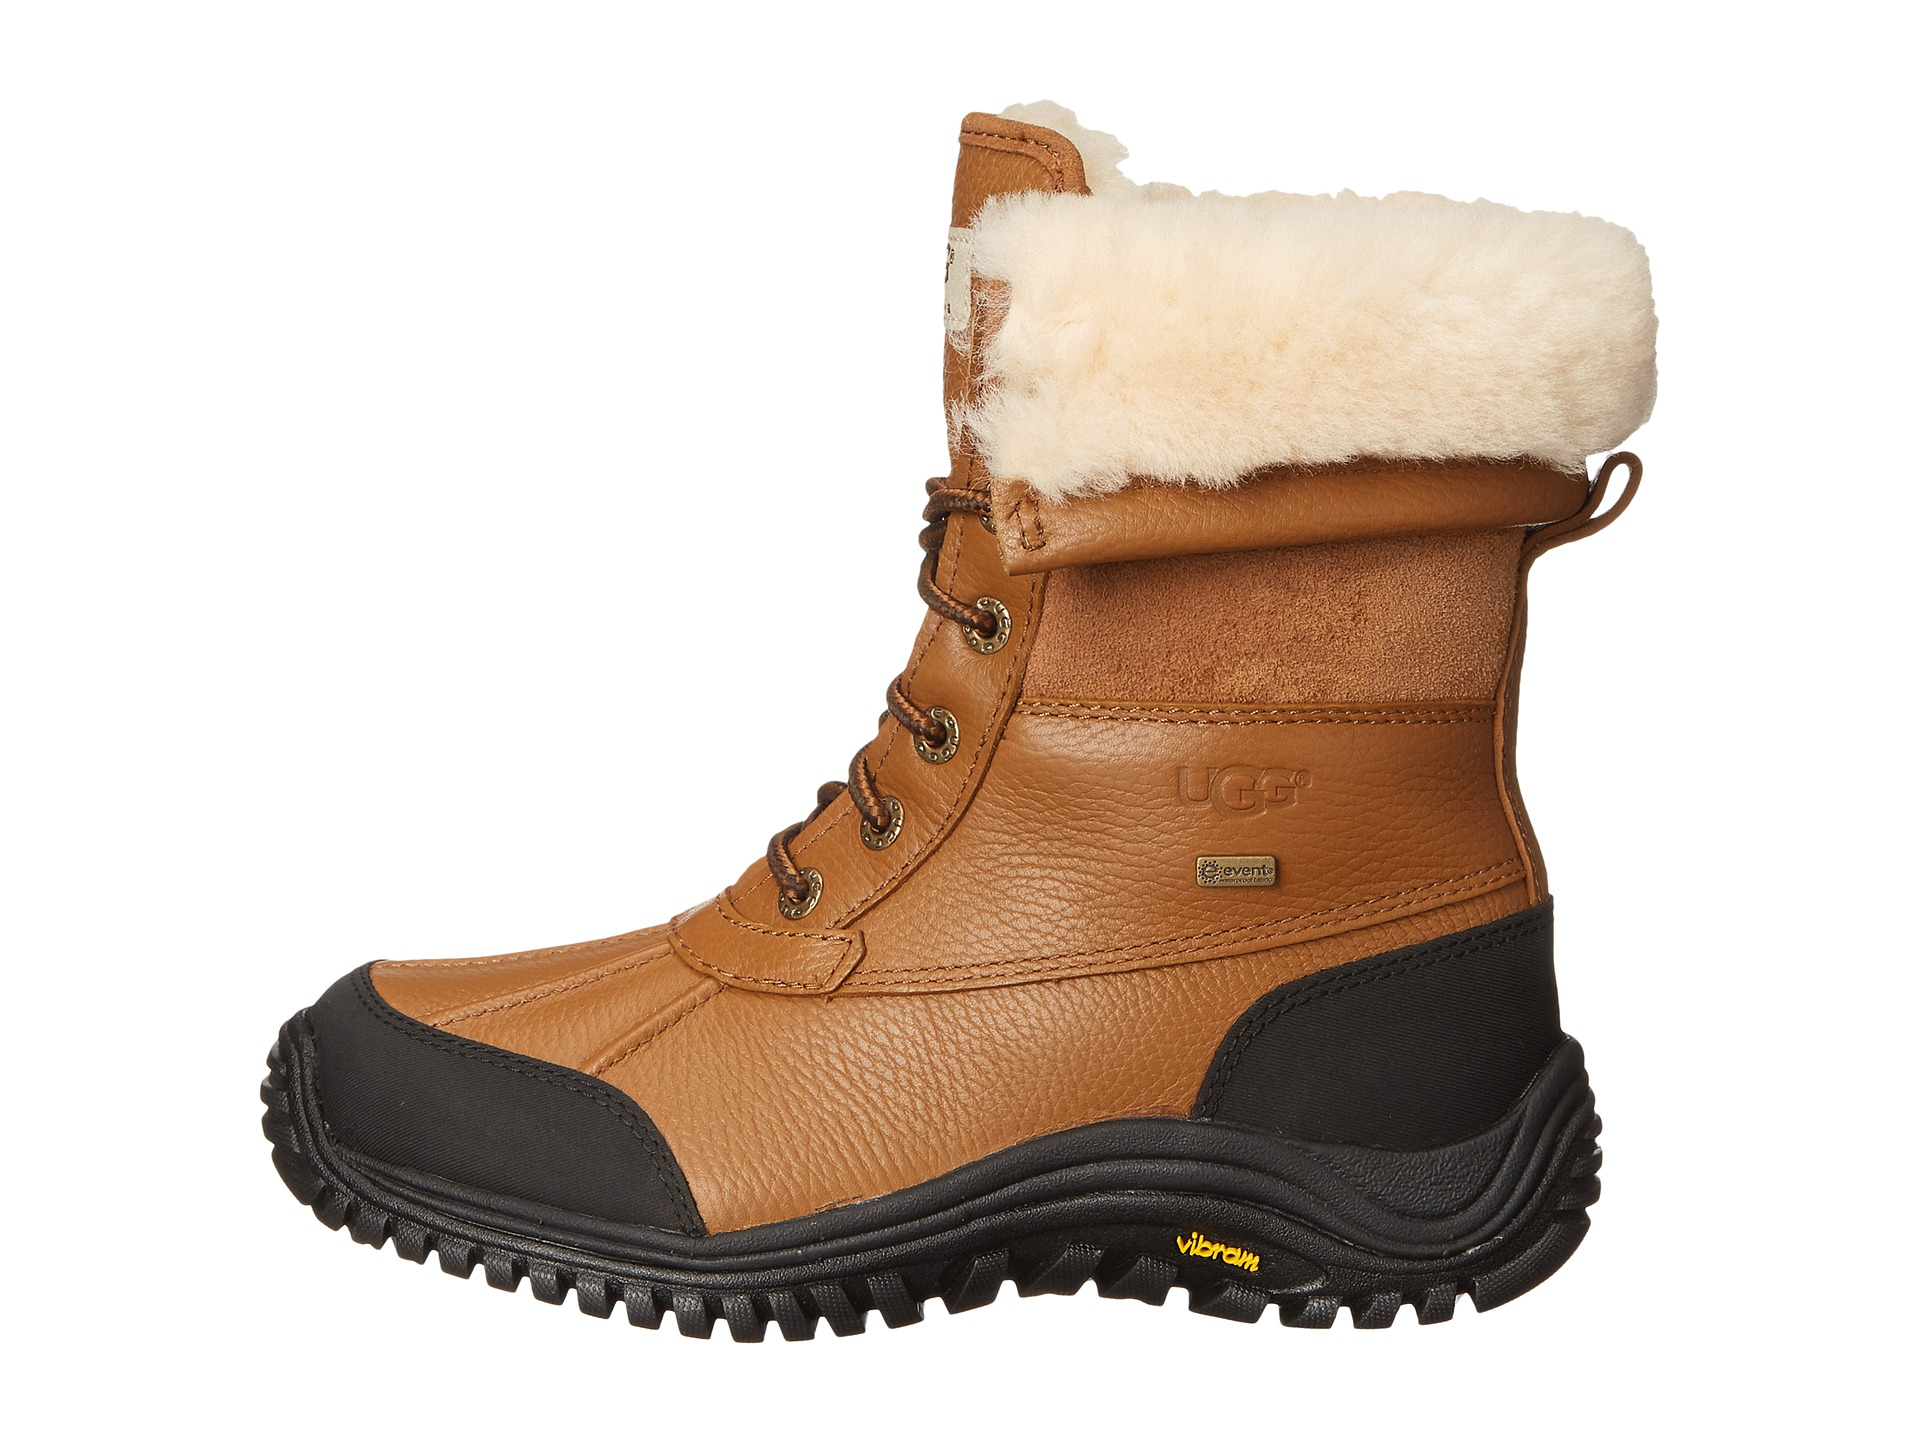 26f7f8be74a Ugg Adirondack Ii Boots Review - cheap watches mgc-gas.com